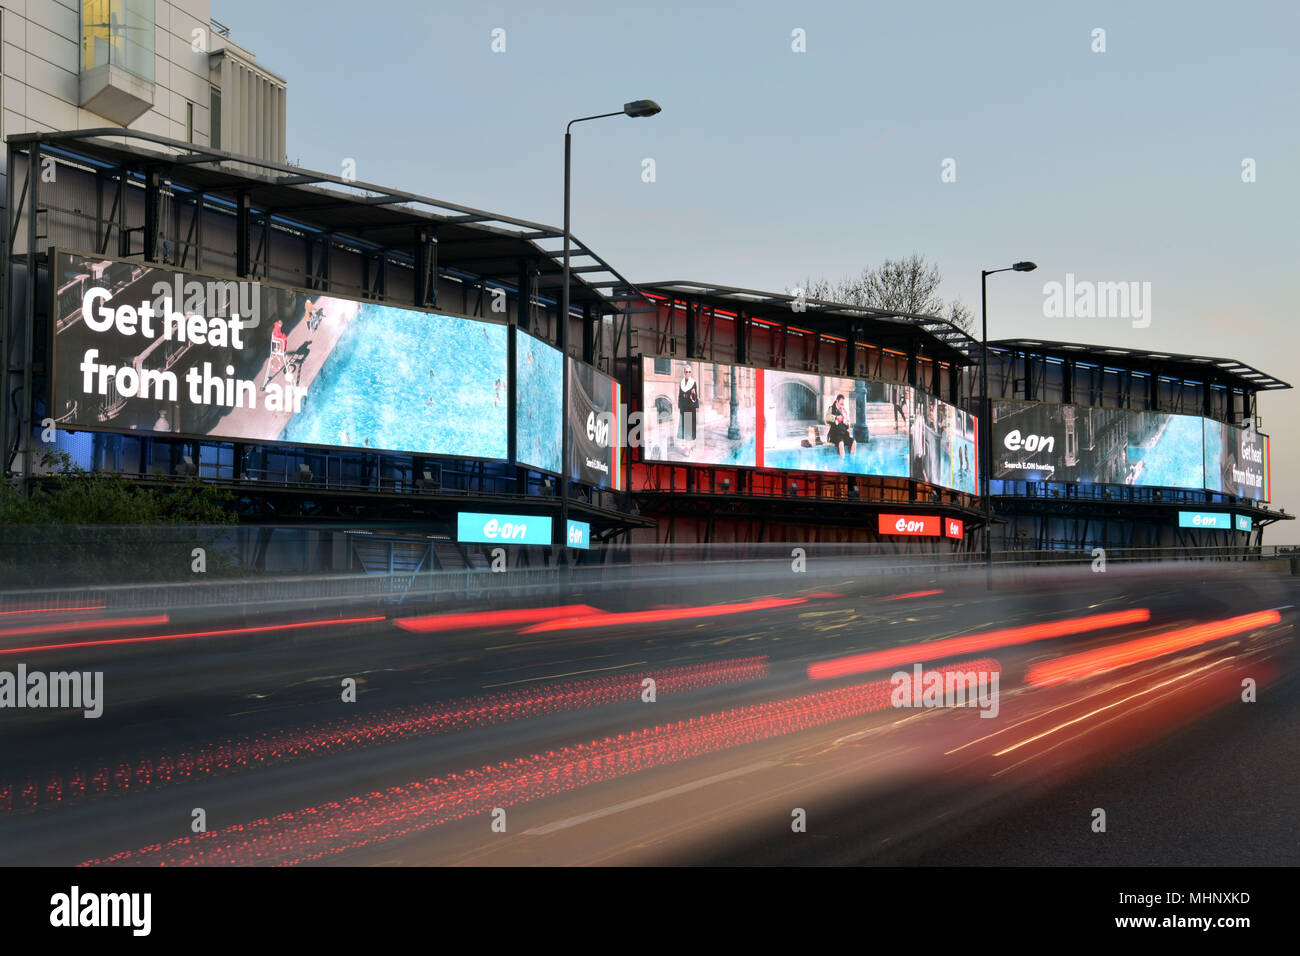 Digital advertising hoardings promoting the domestic energy company E-on on the Talgarth Road, Fulham  in West London, UK. - Stock Image